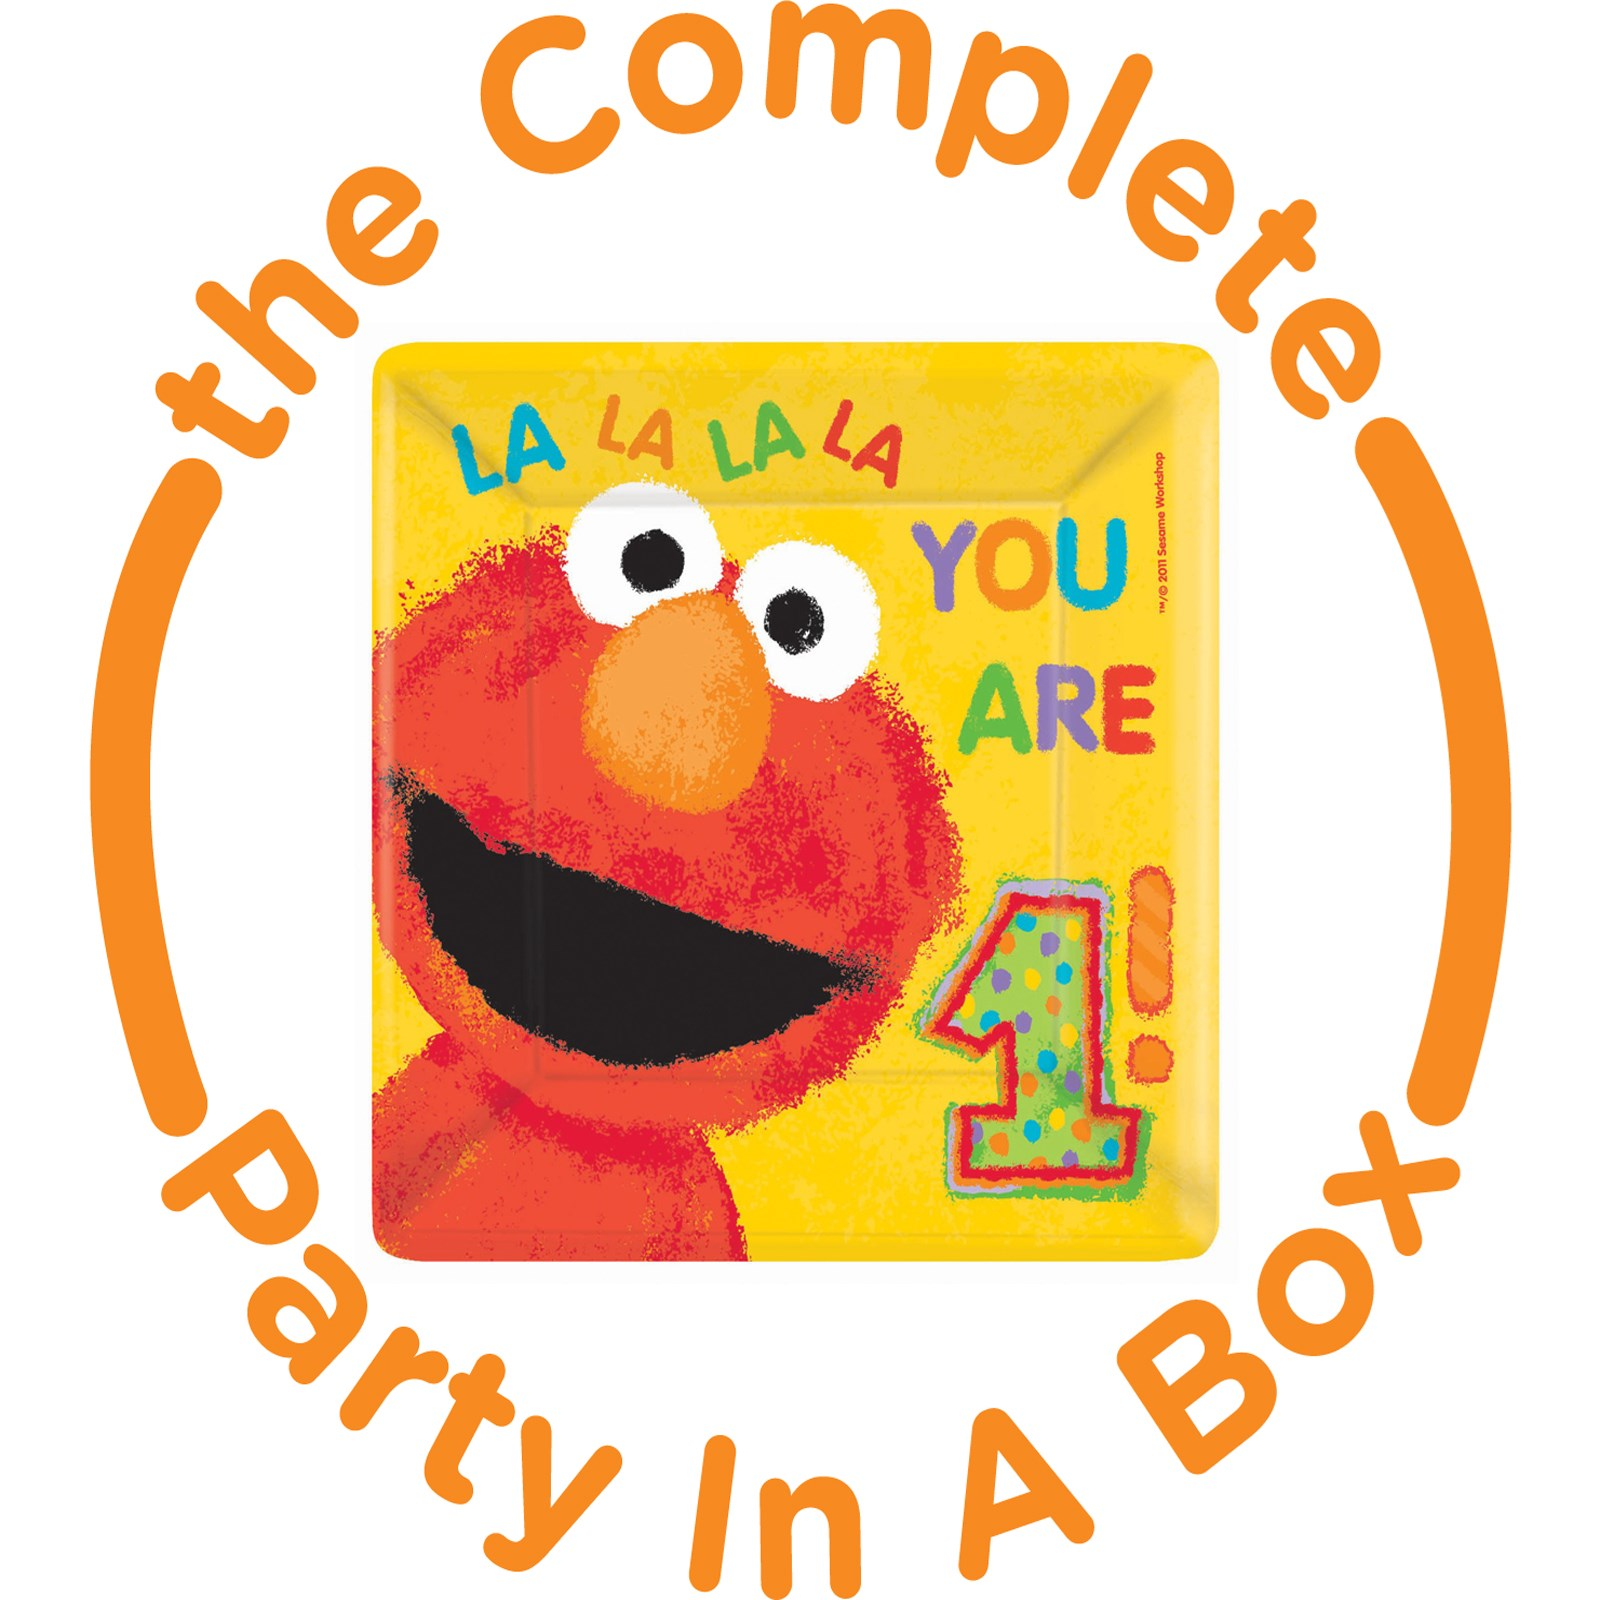 Elmo 1st Birthday Party in a Box - Deluxe with Favors - 16 Guests